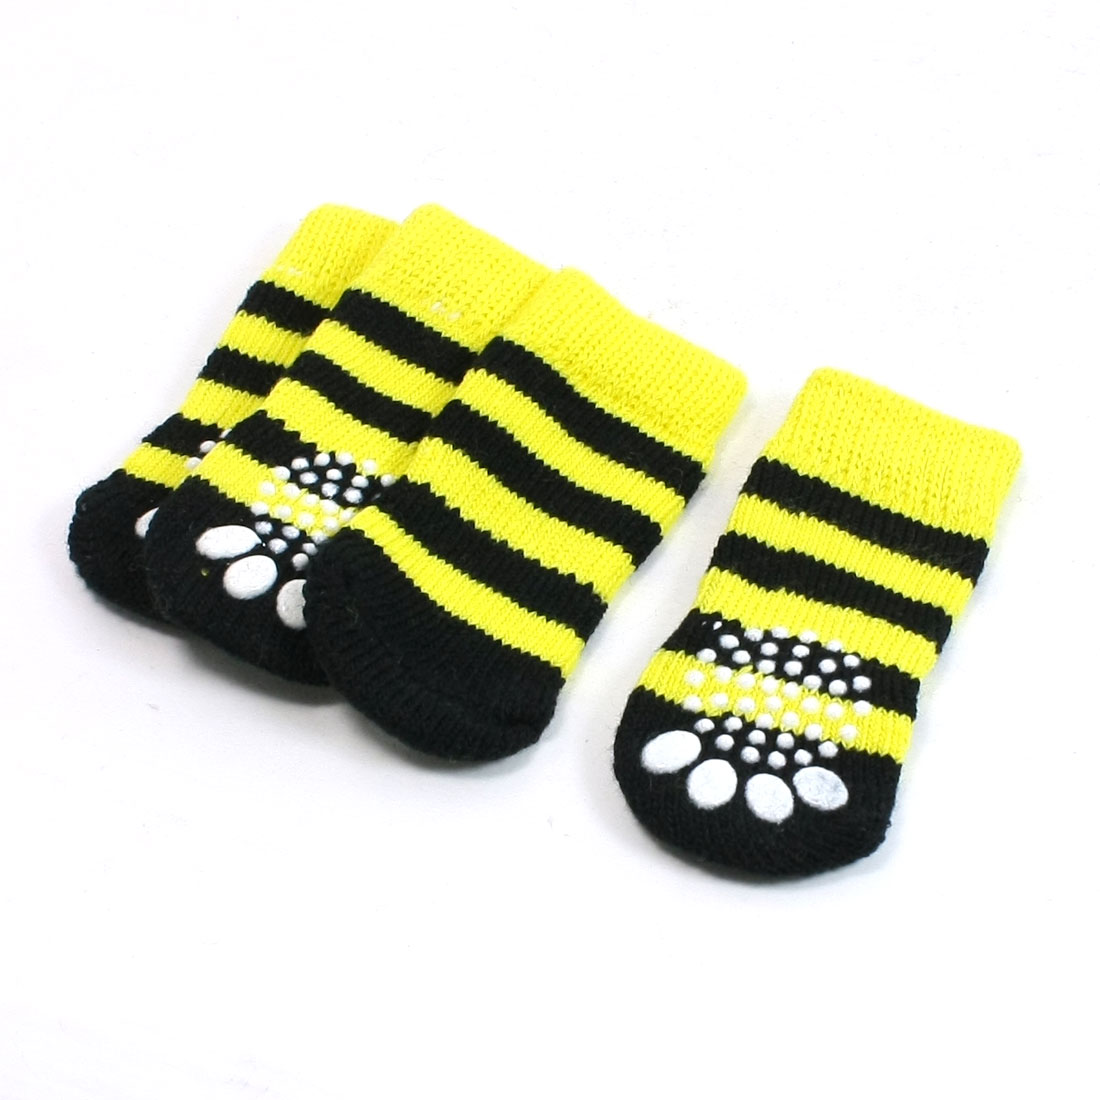 2 Pairs Yellow Black Stripe Printed Antislip Bottom Pet Dog Puppy Socks Size M